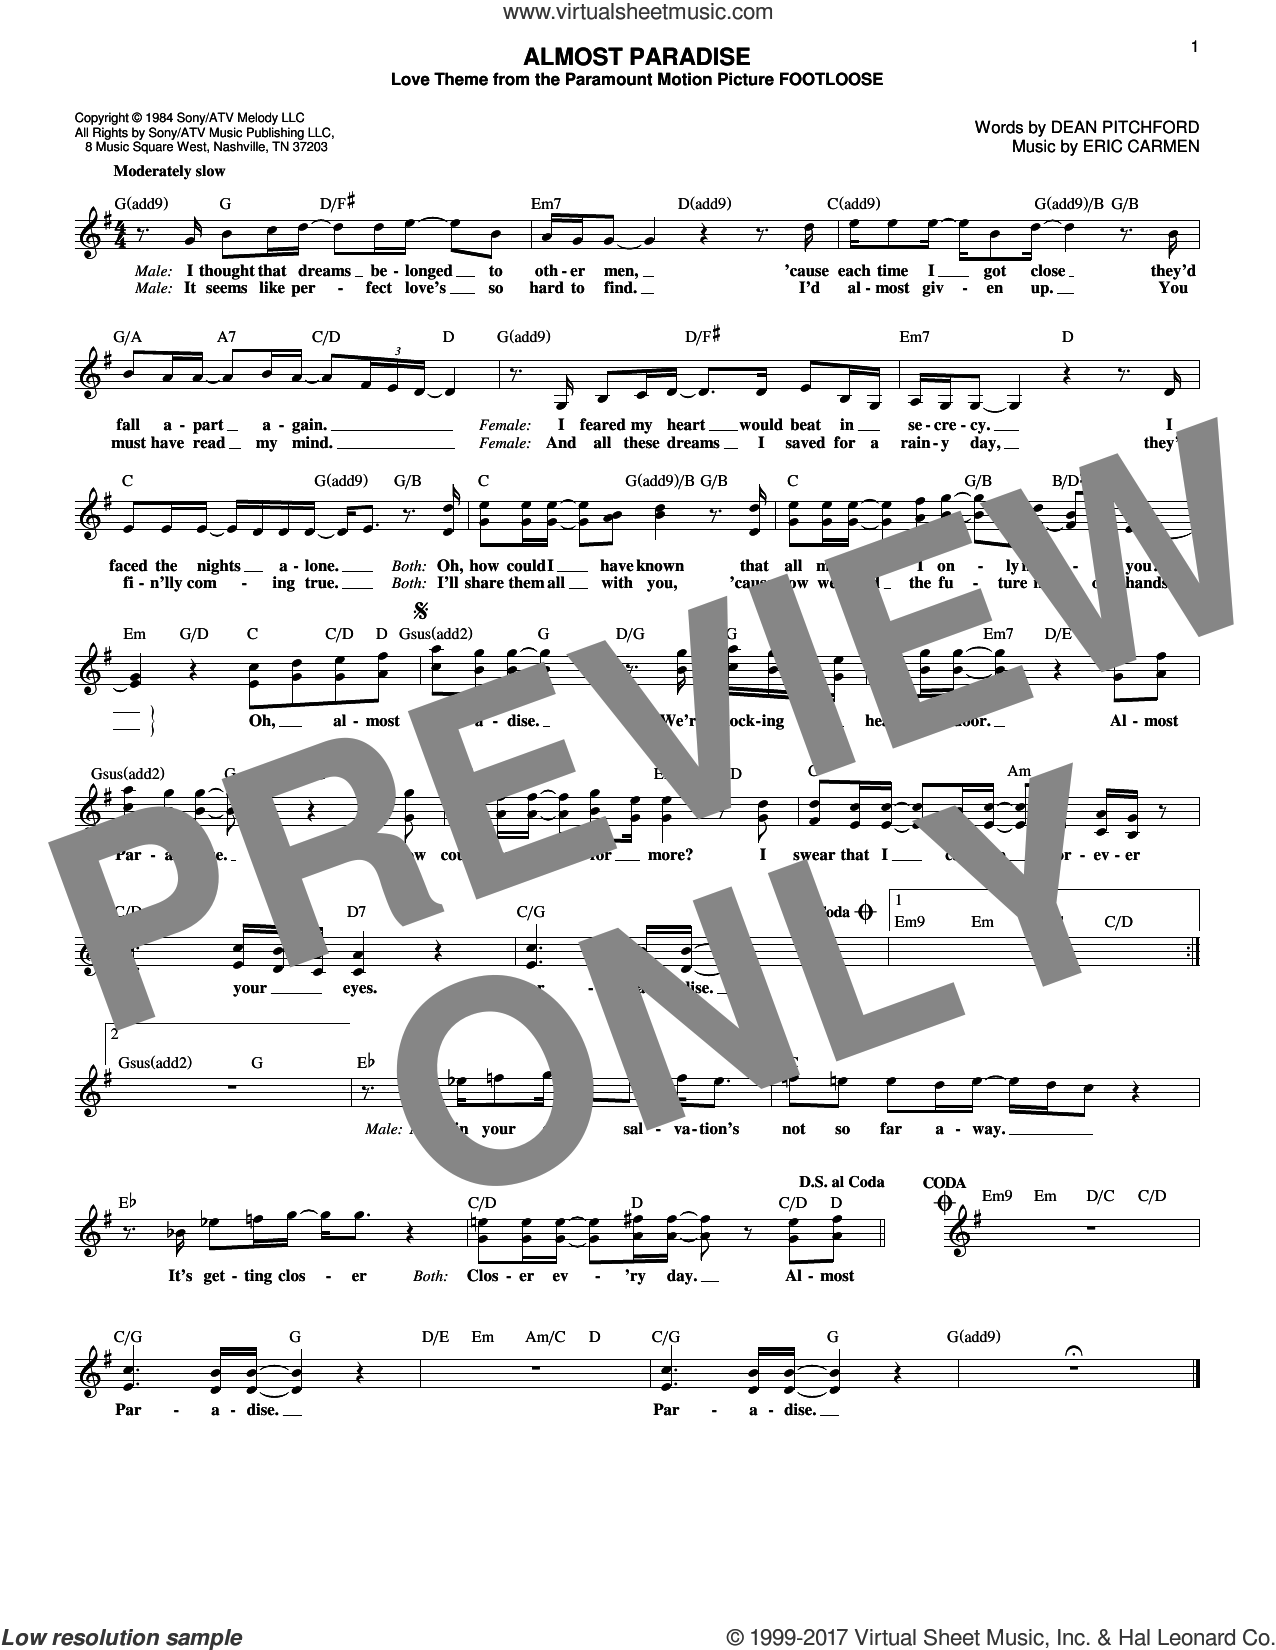 Almost Paradise sheet music for voice and other instruments (fake book) by Ann Wilson & Mike Reno, Dean Pitchford and Eric Carmen, intermediate skill level